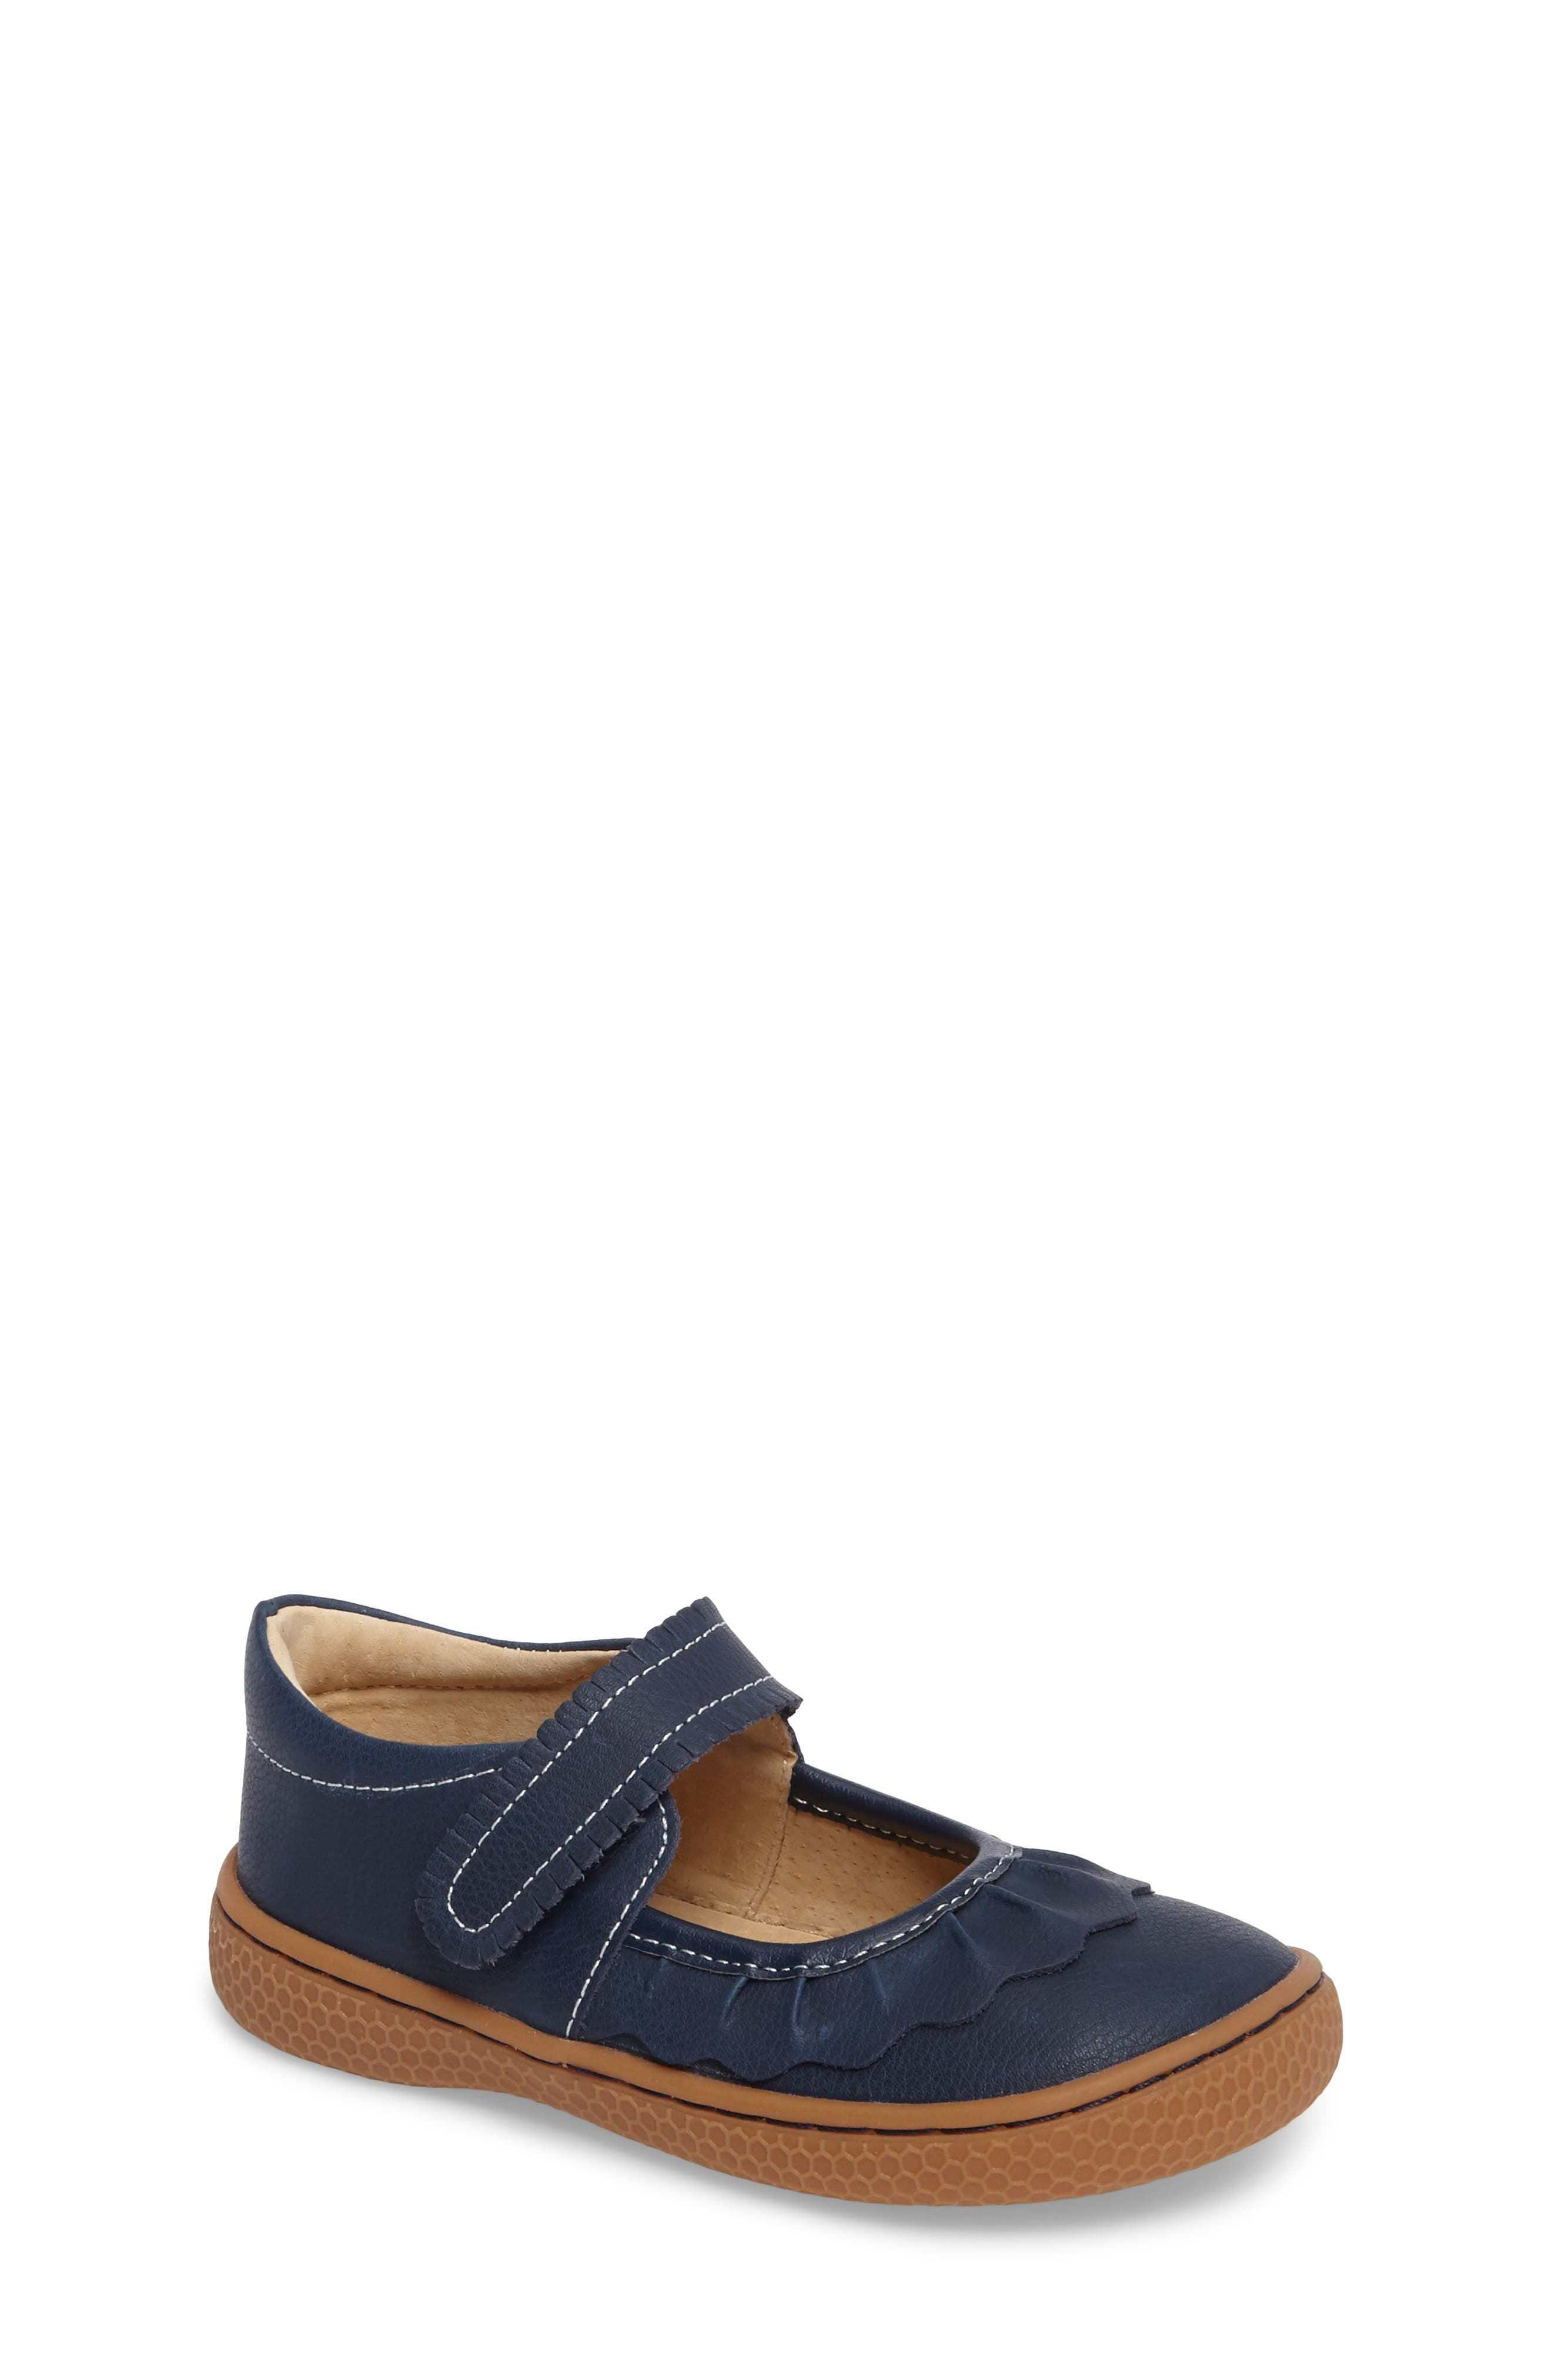 'Ruche' Mary Jane,                         Main,                         color, Navy Blue